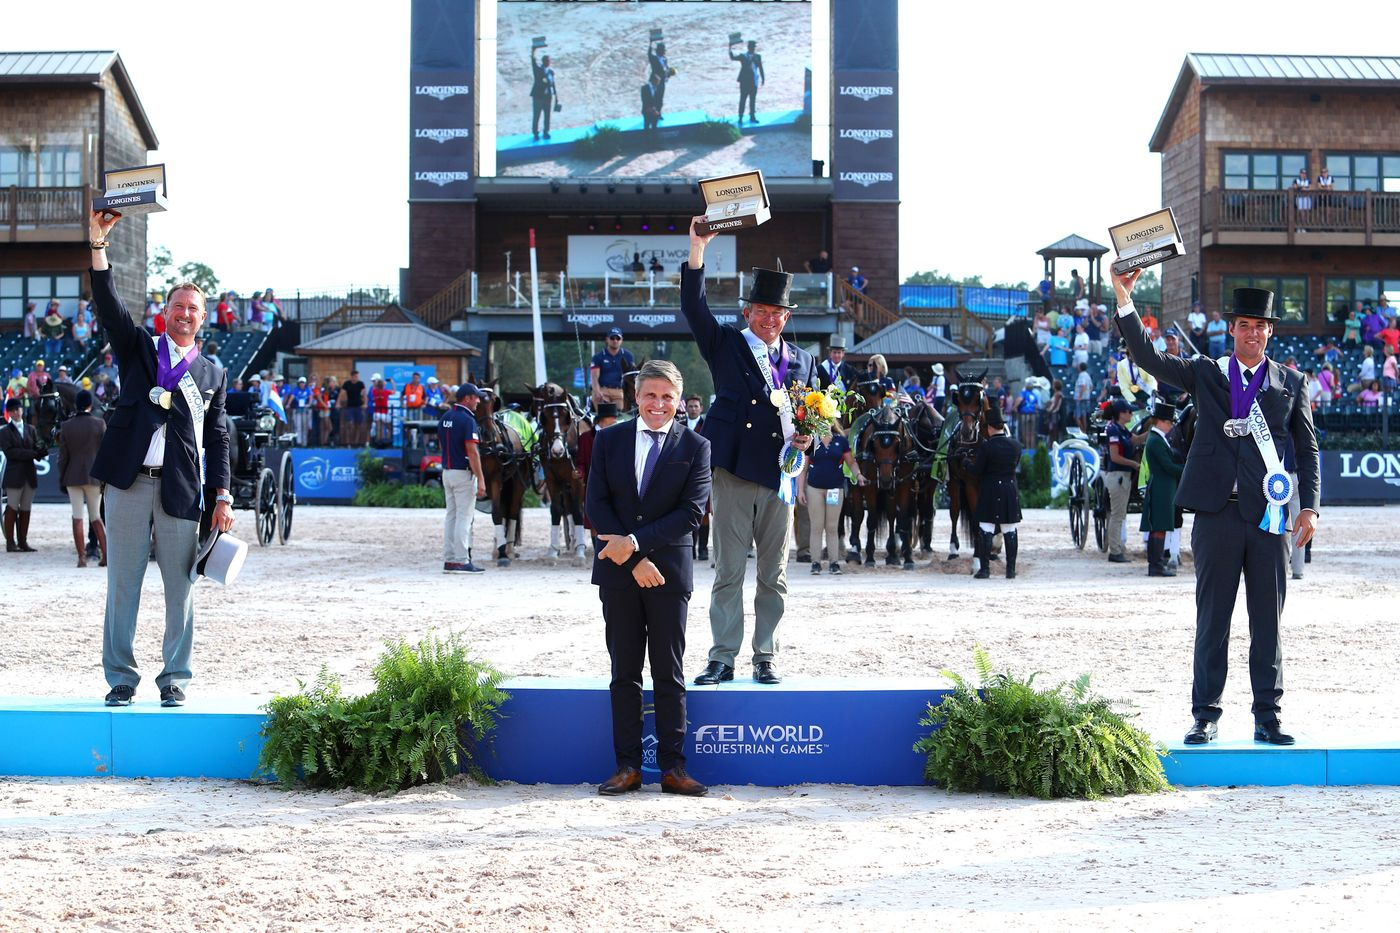 Longines Show Jumping Event: The FEI World Equestrian Games ended beautifully with Germany topping the medal table   1